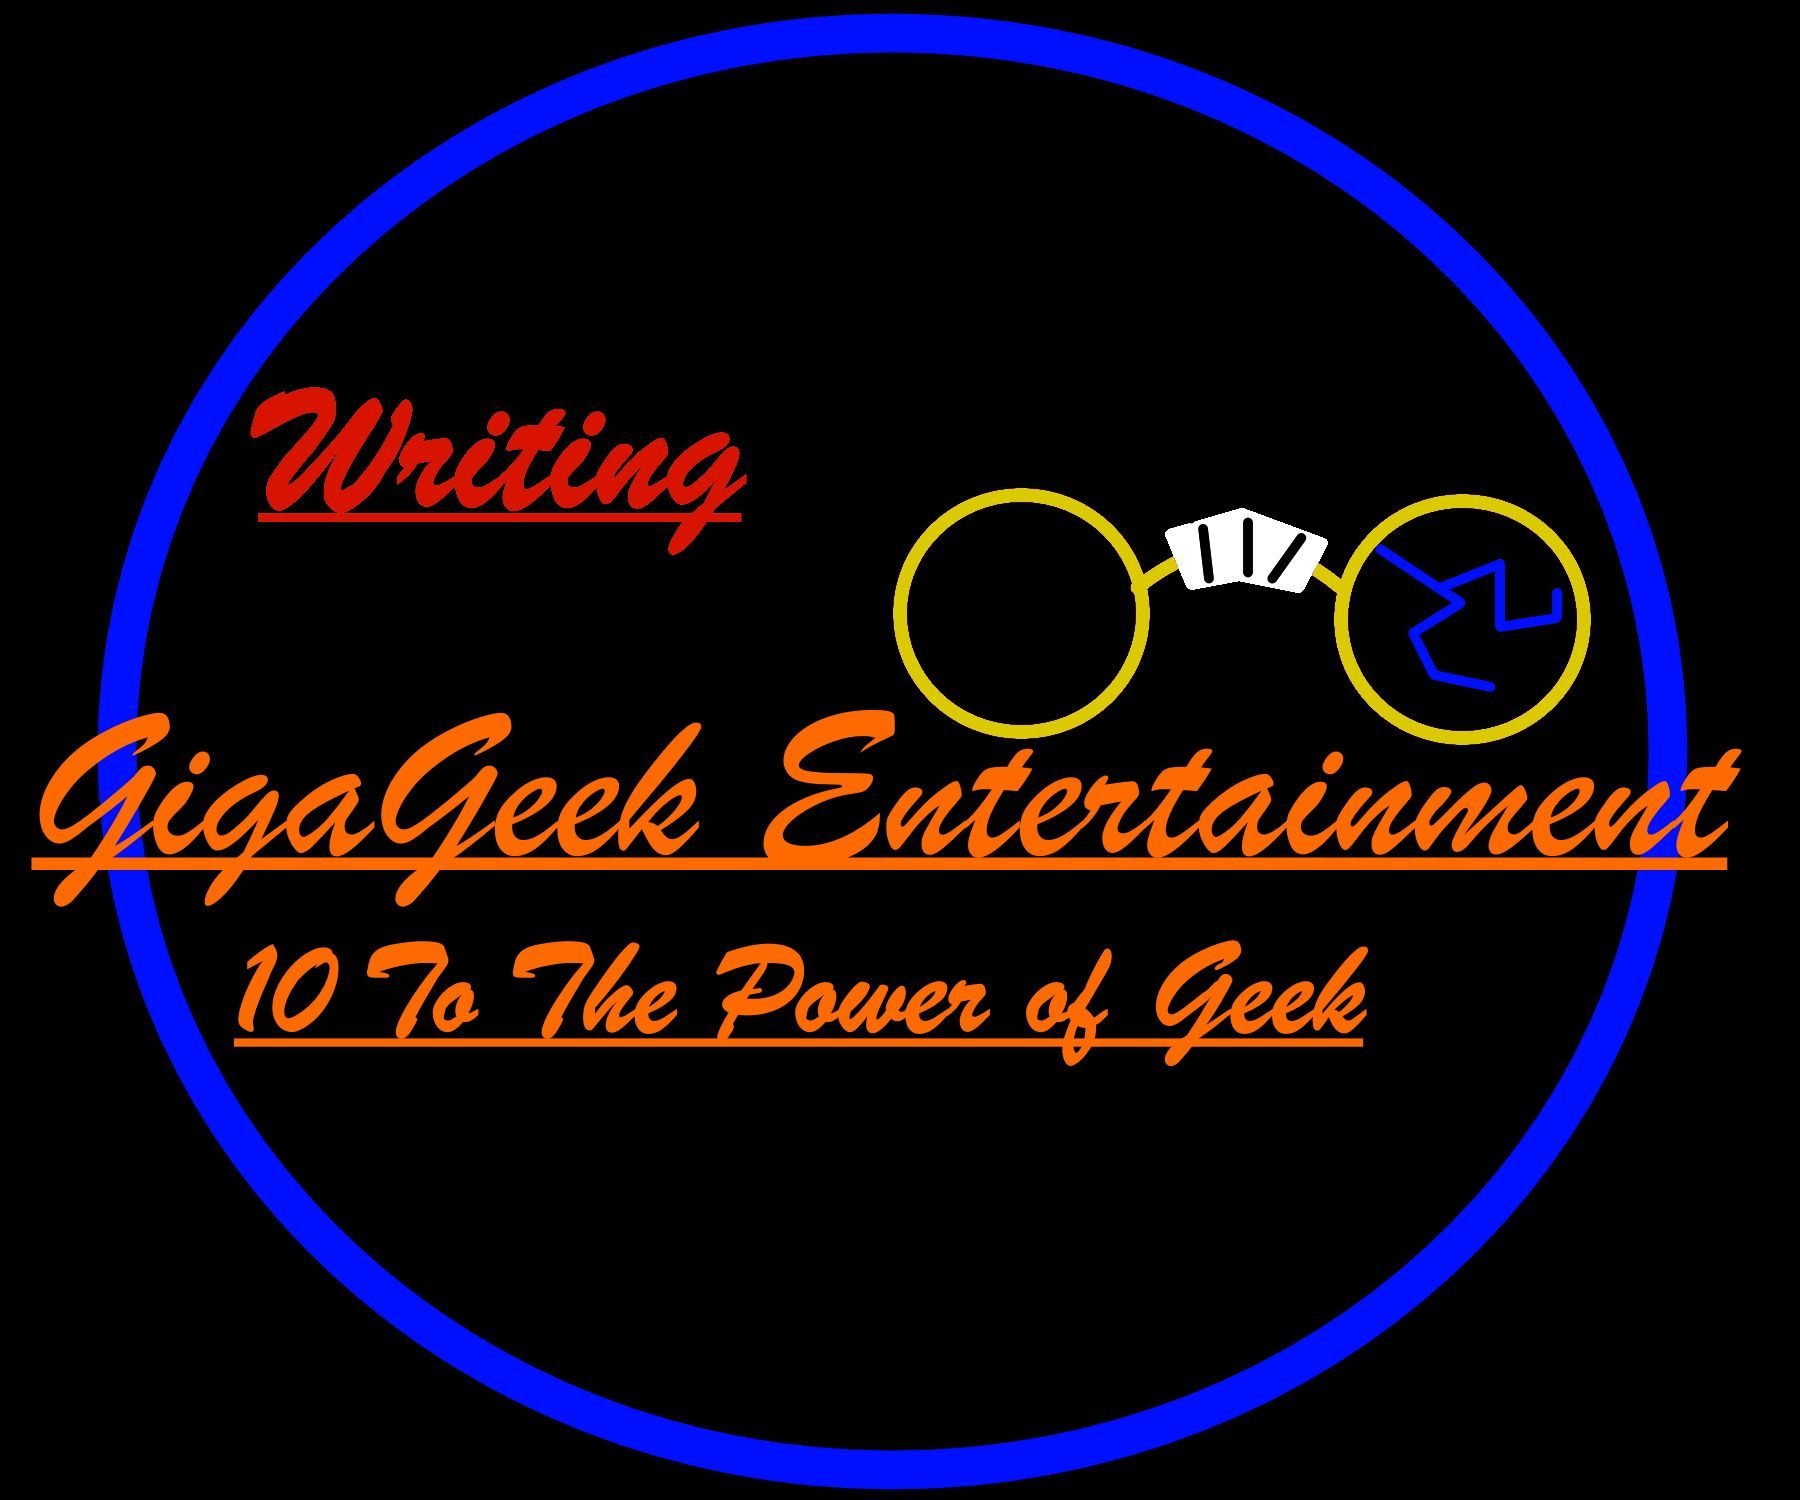 The GigaGeek: Writing